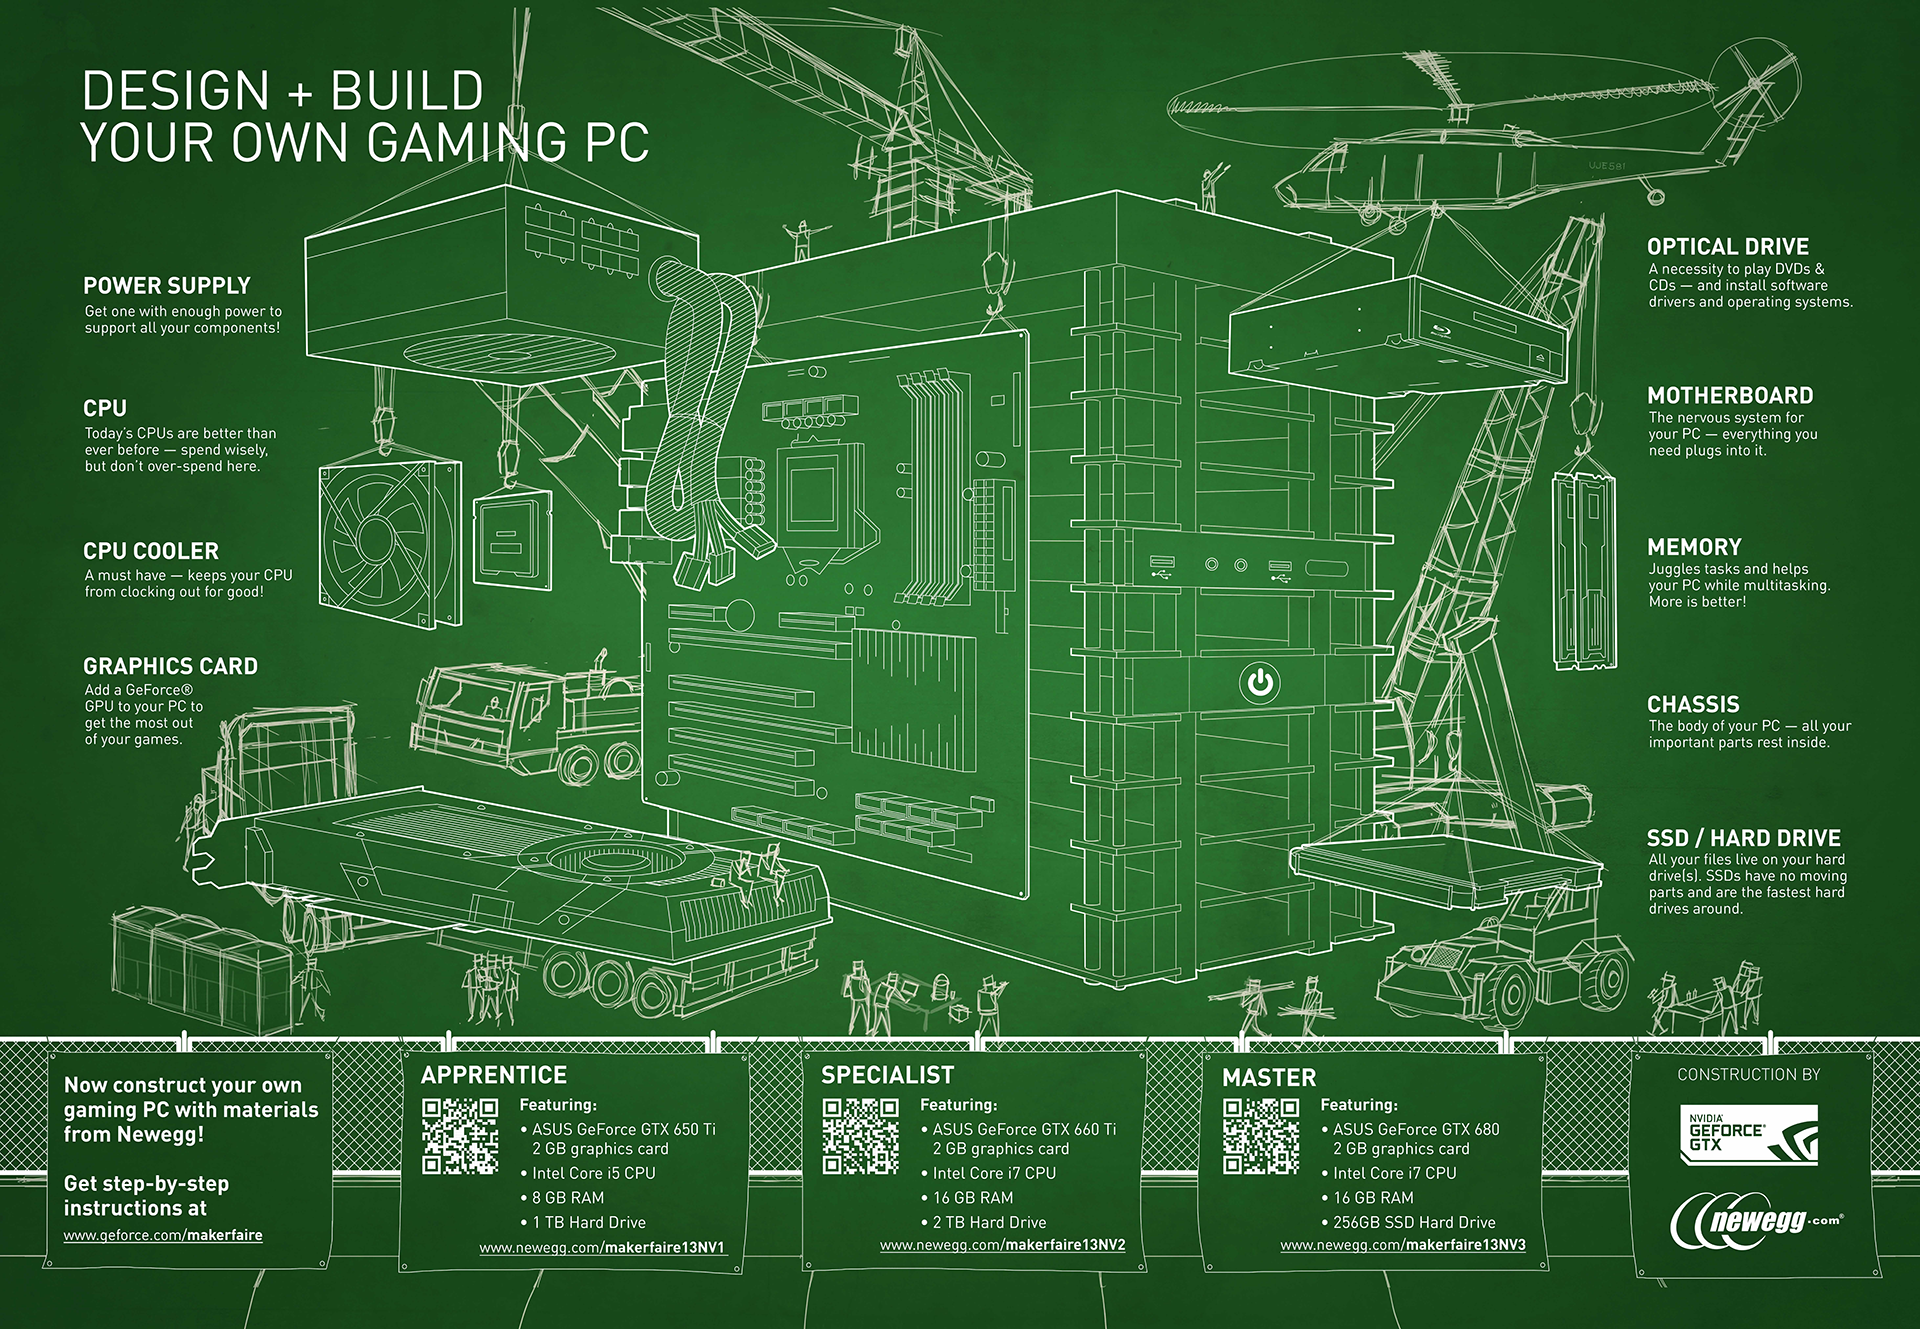 Design build your own gaming pc geforce view the full hi res diagram malvernweather Choice Image